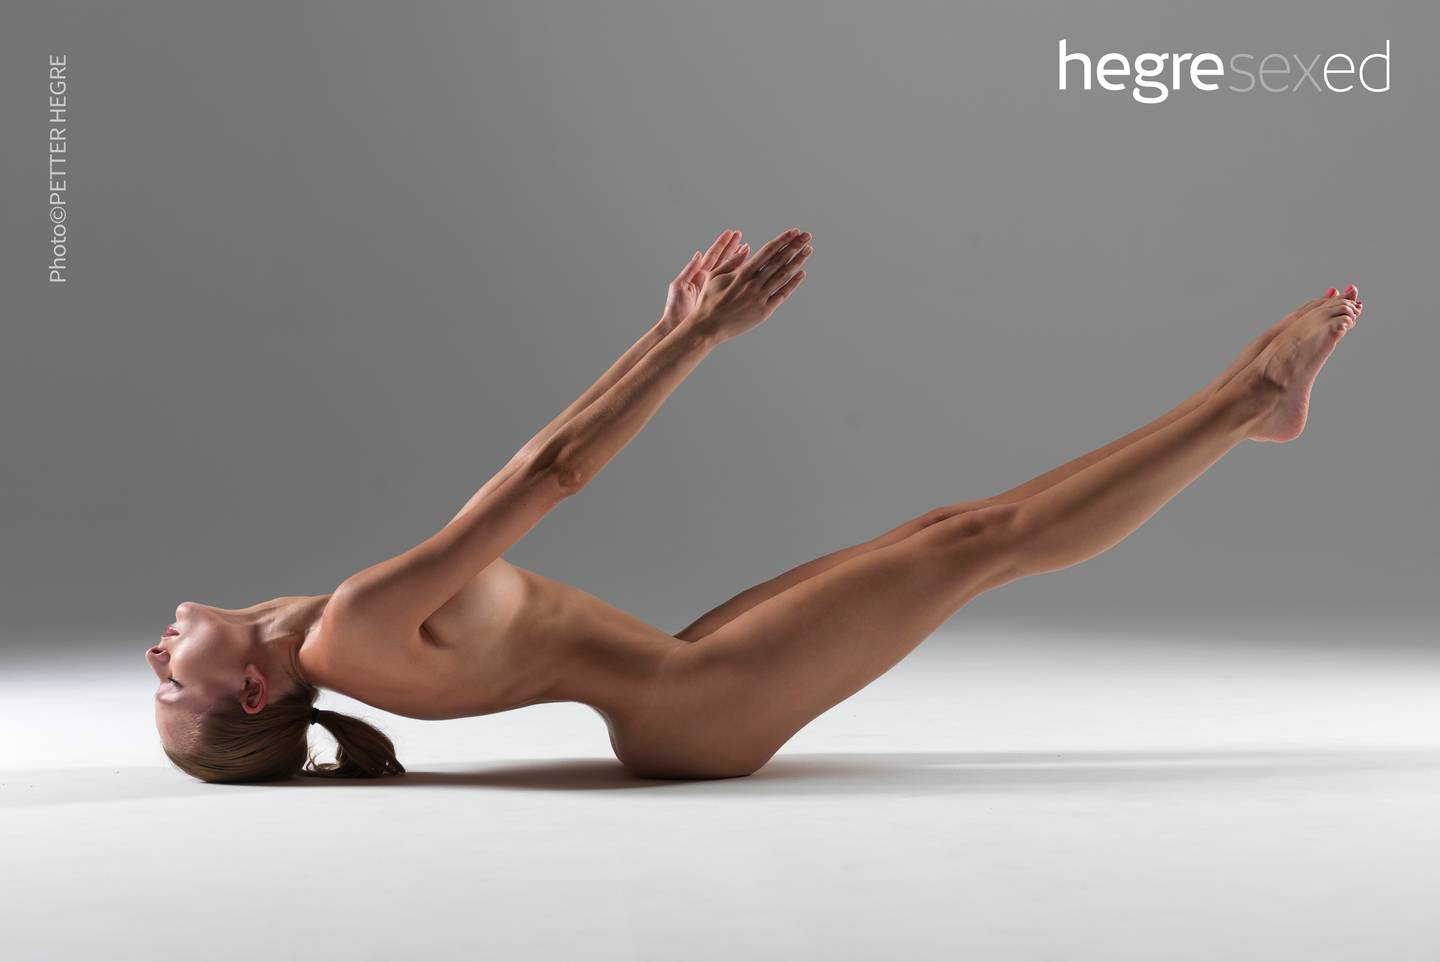 7-ways-yoga-boosts-your-sex-life-6-content-image-1440x